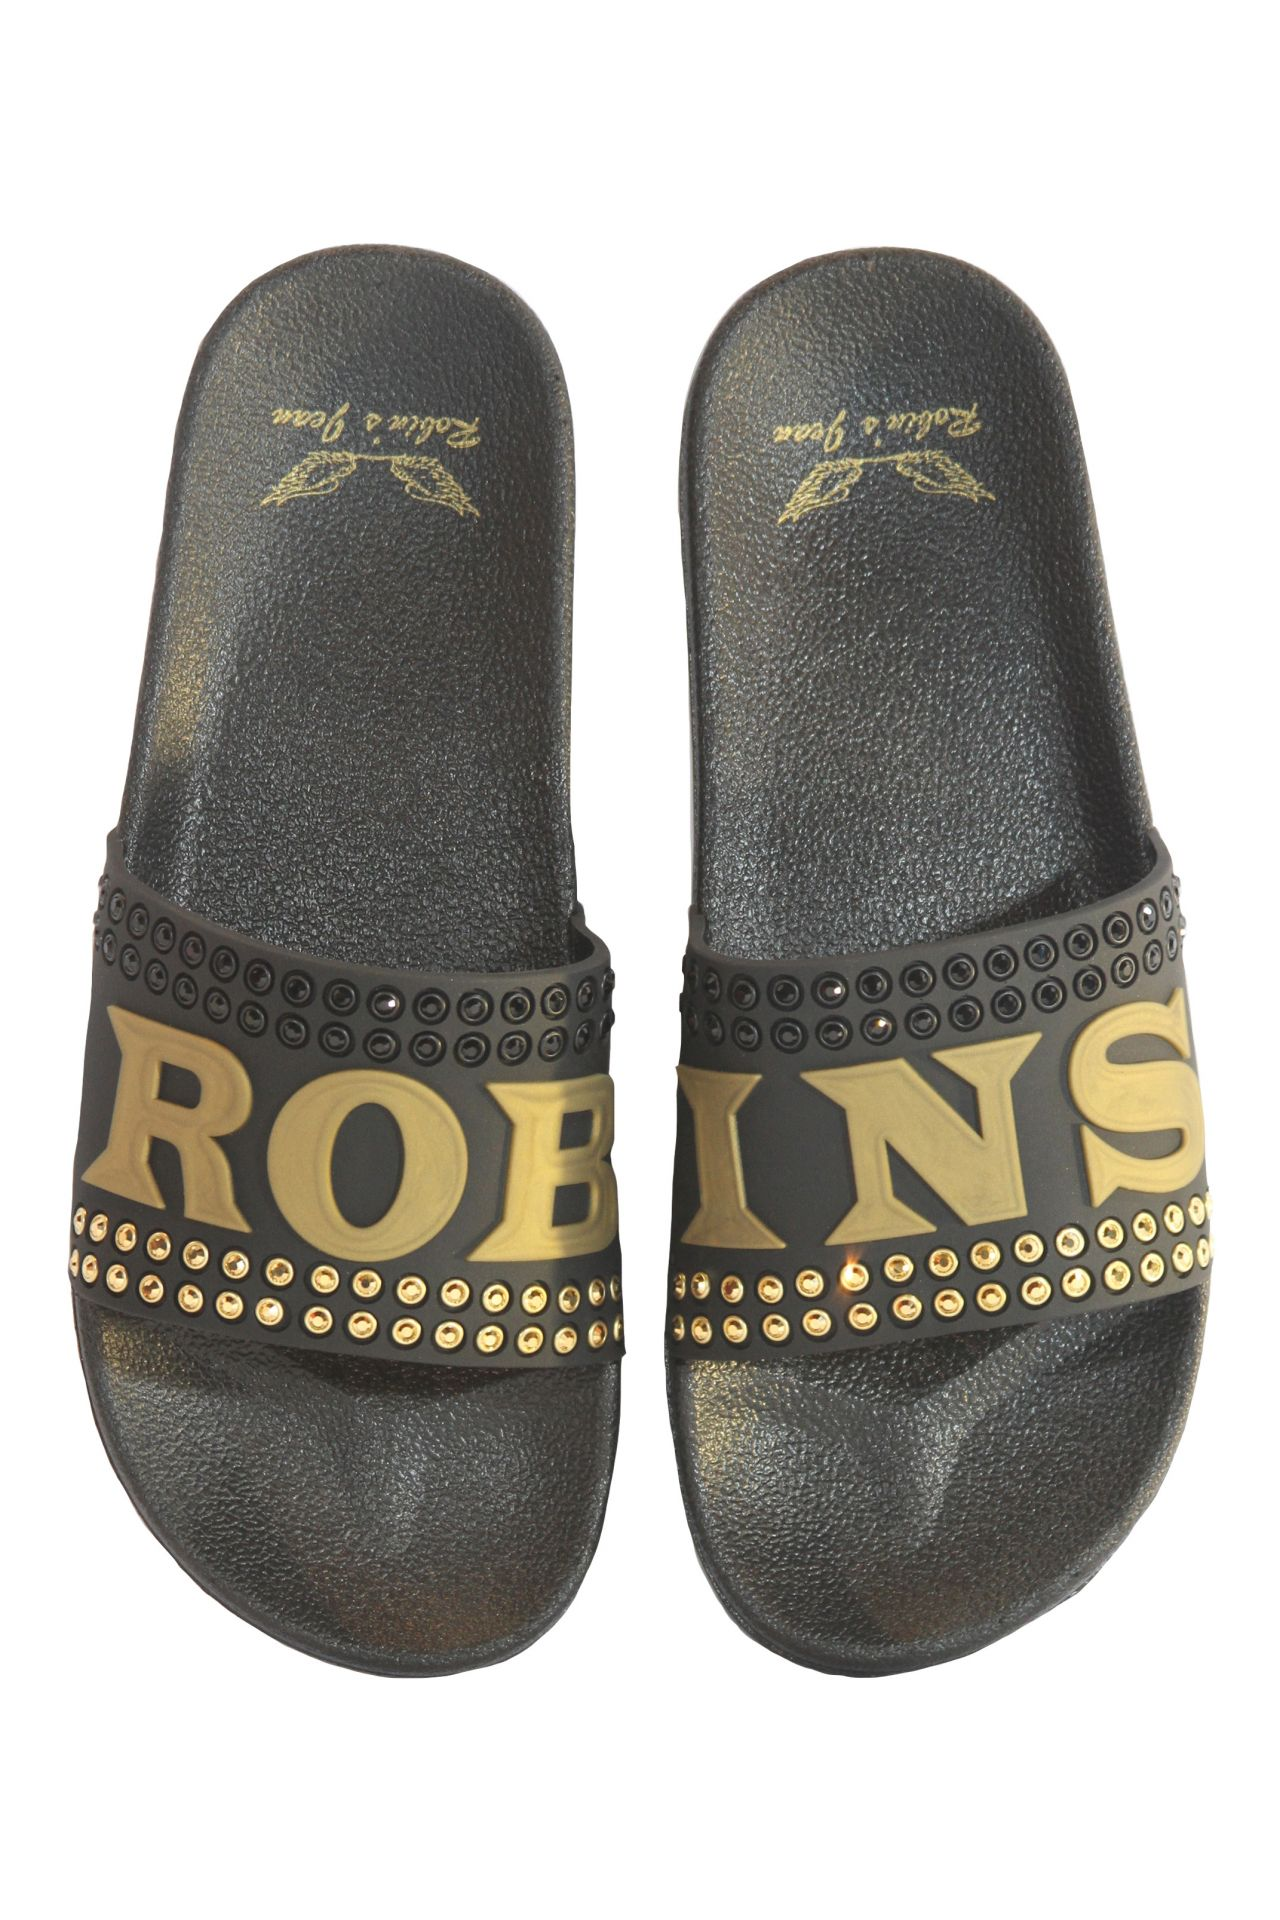 ROBIN SLIDES WITH BLACK AND GOLD CRYSTALS